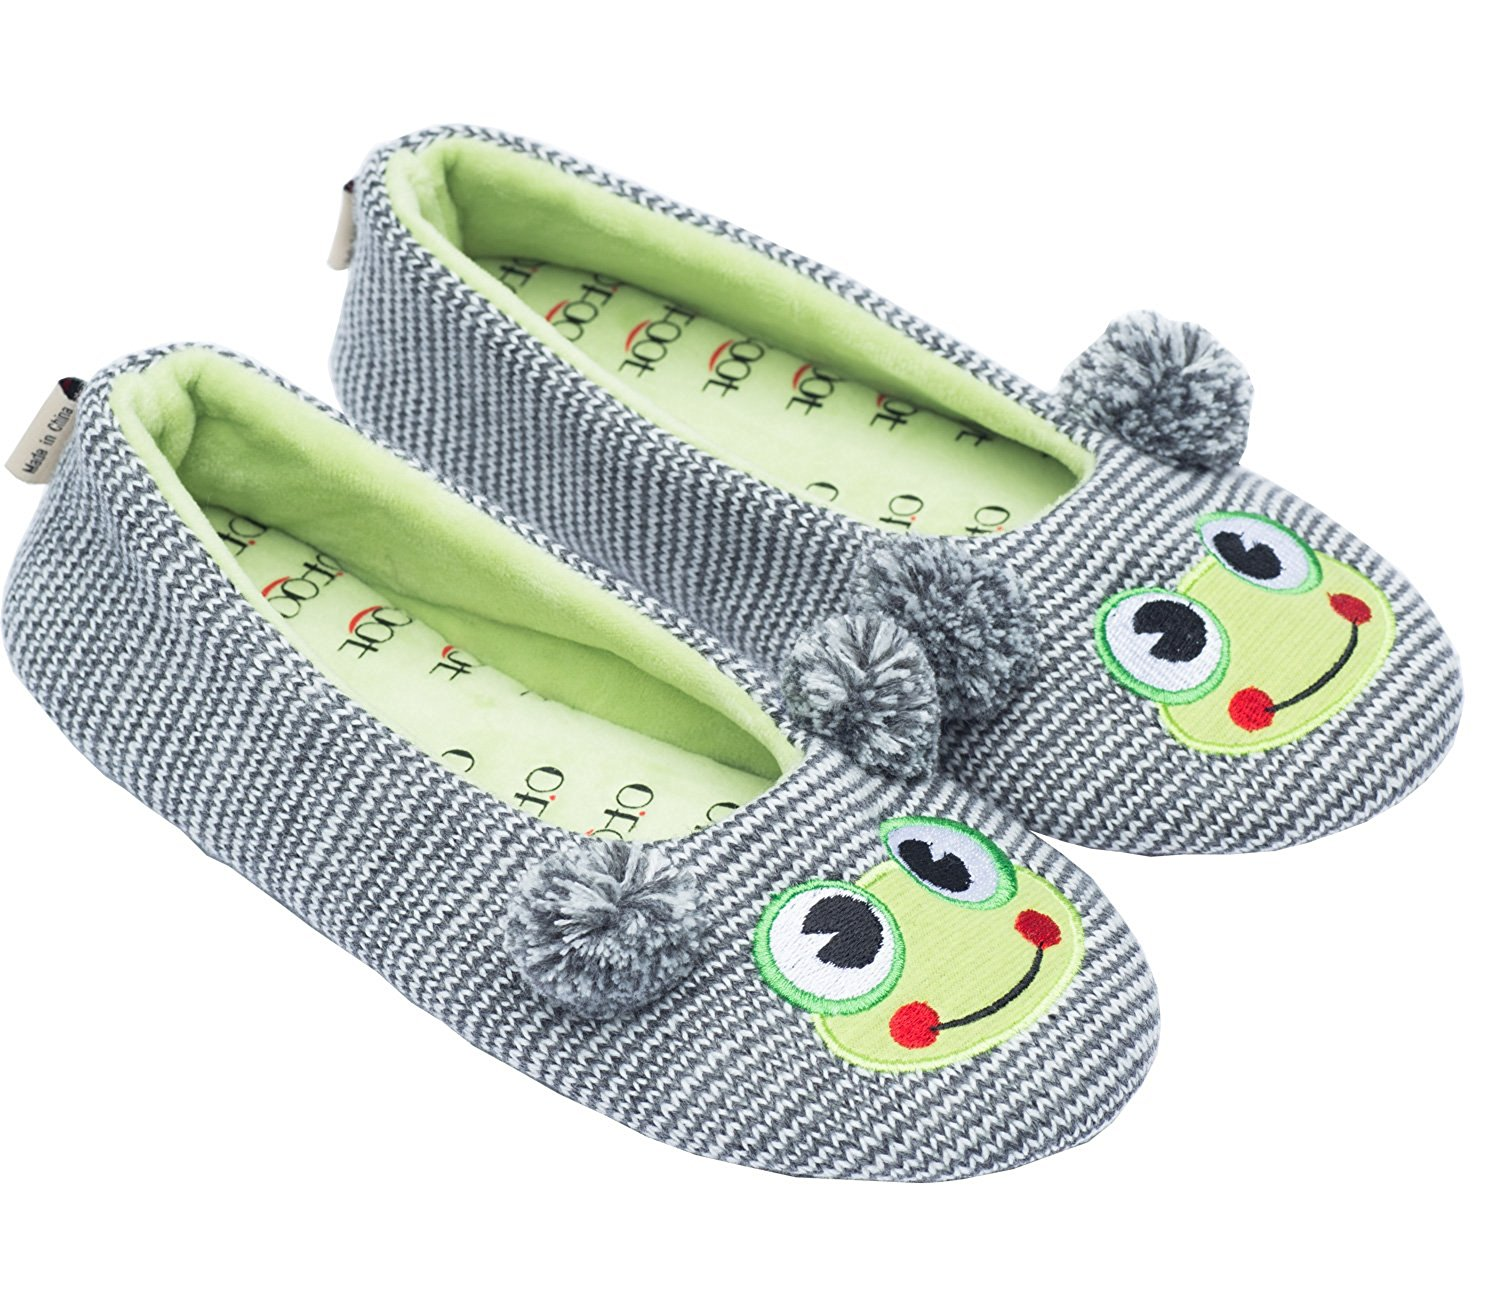 Ofoot Women's Cute Soft Ballerina Slipper,Frog,Owl,Raccoon,Sweater Knit Slippers for Ladies/Girls,Anti-Slip TPR Sole